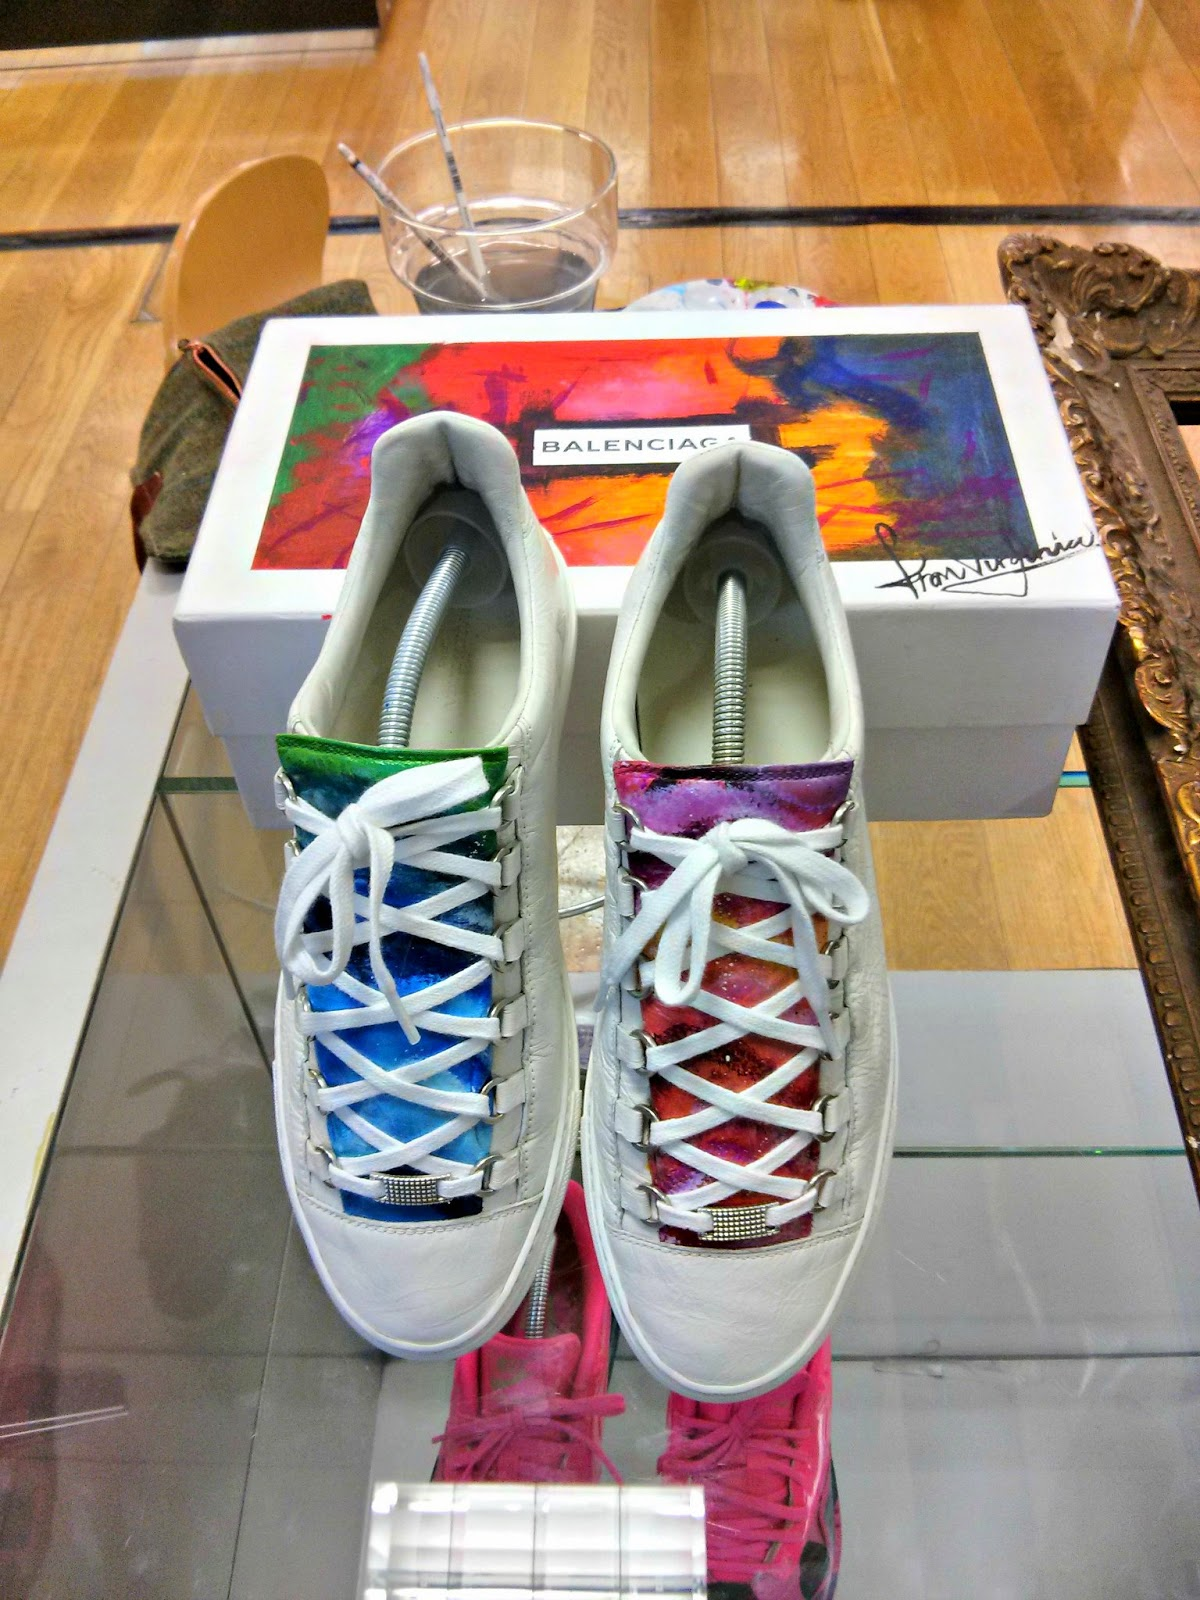 Balenciaga Sneakers Fashion